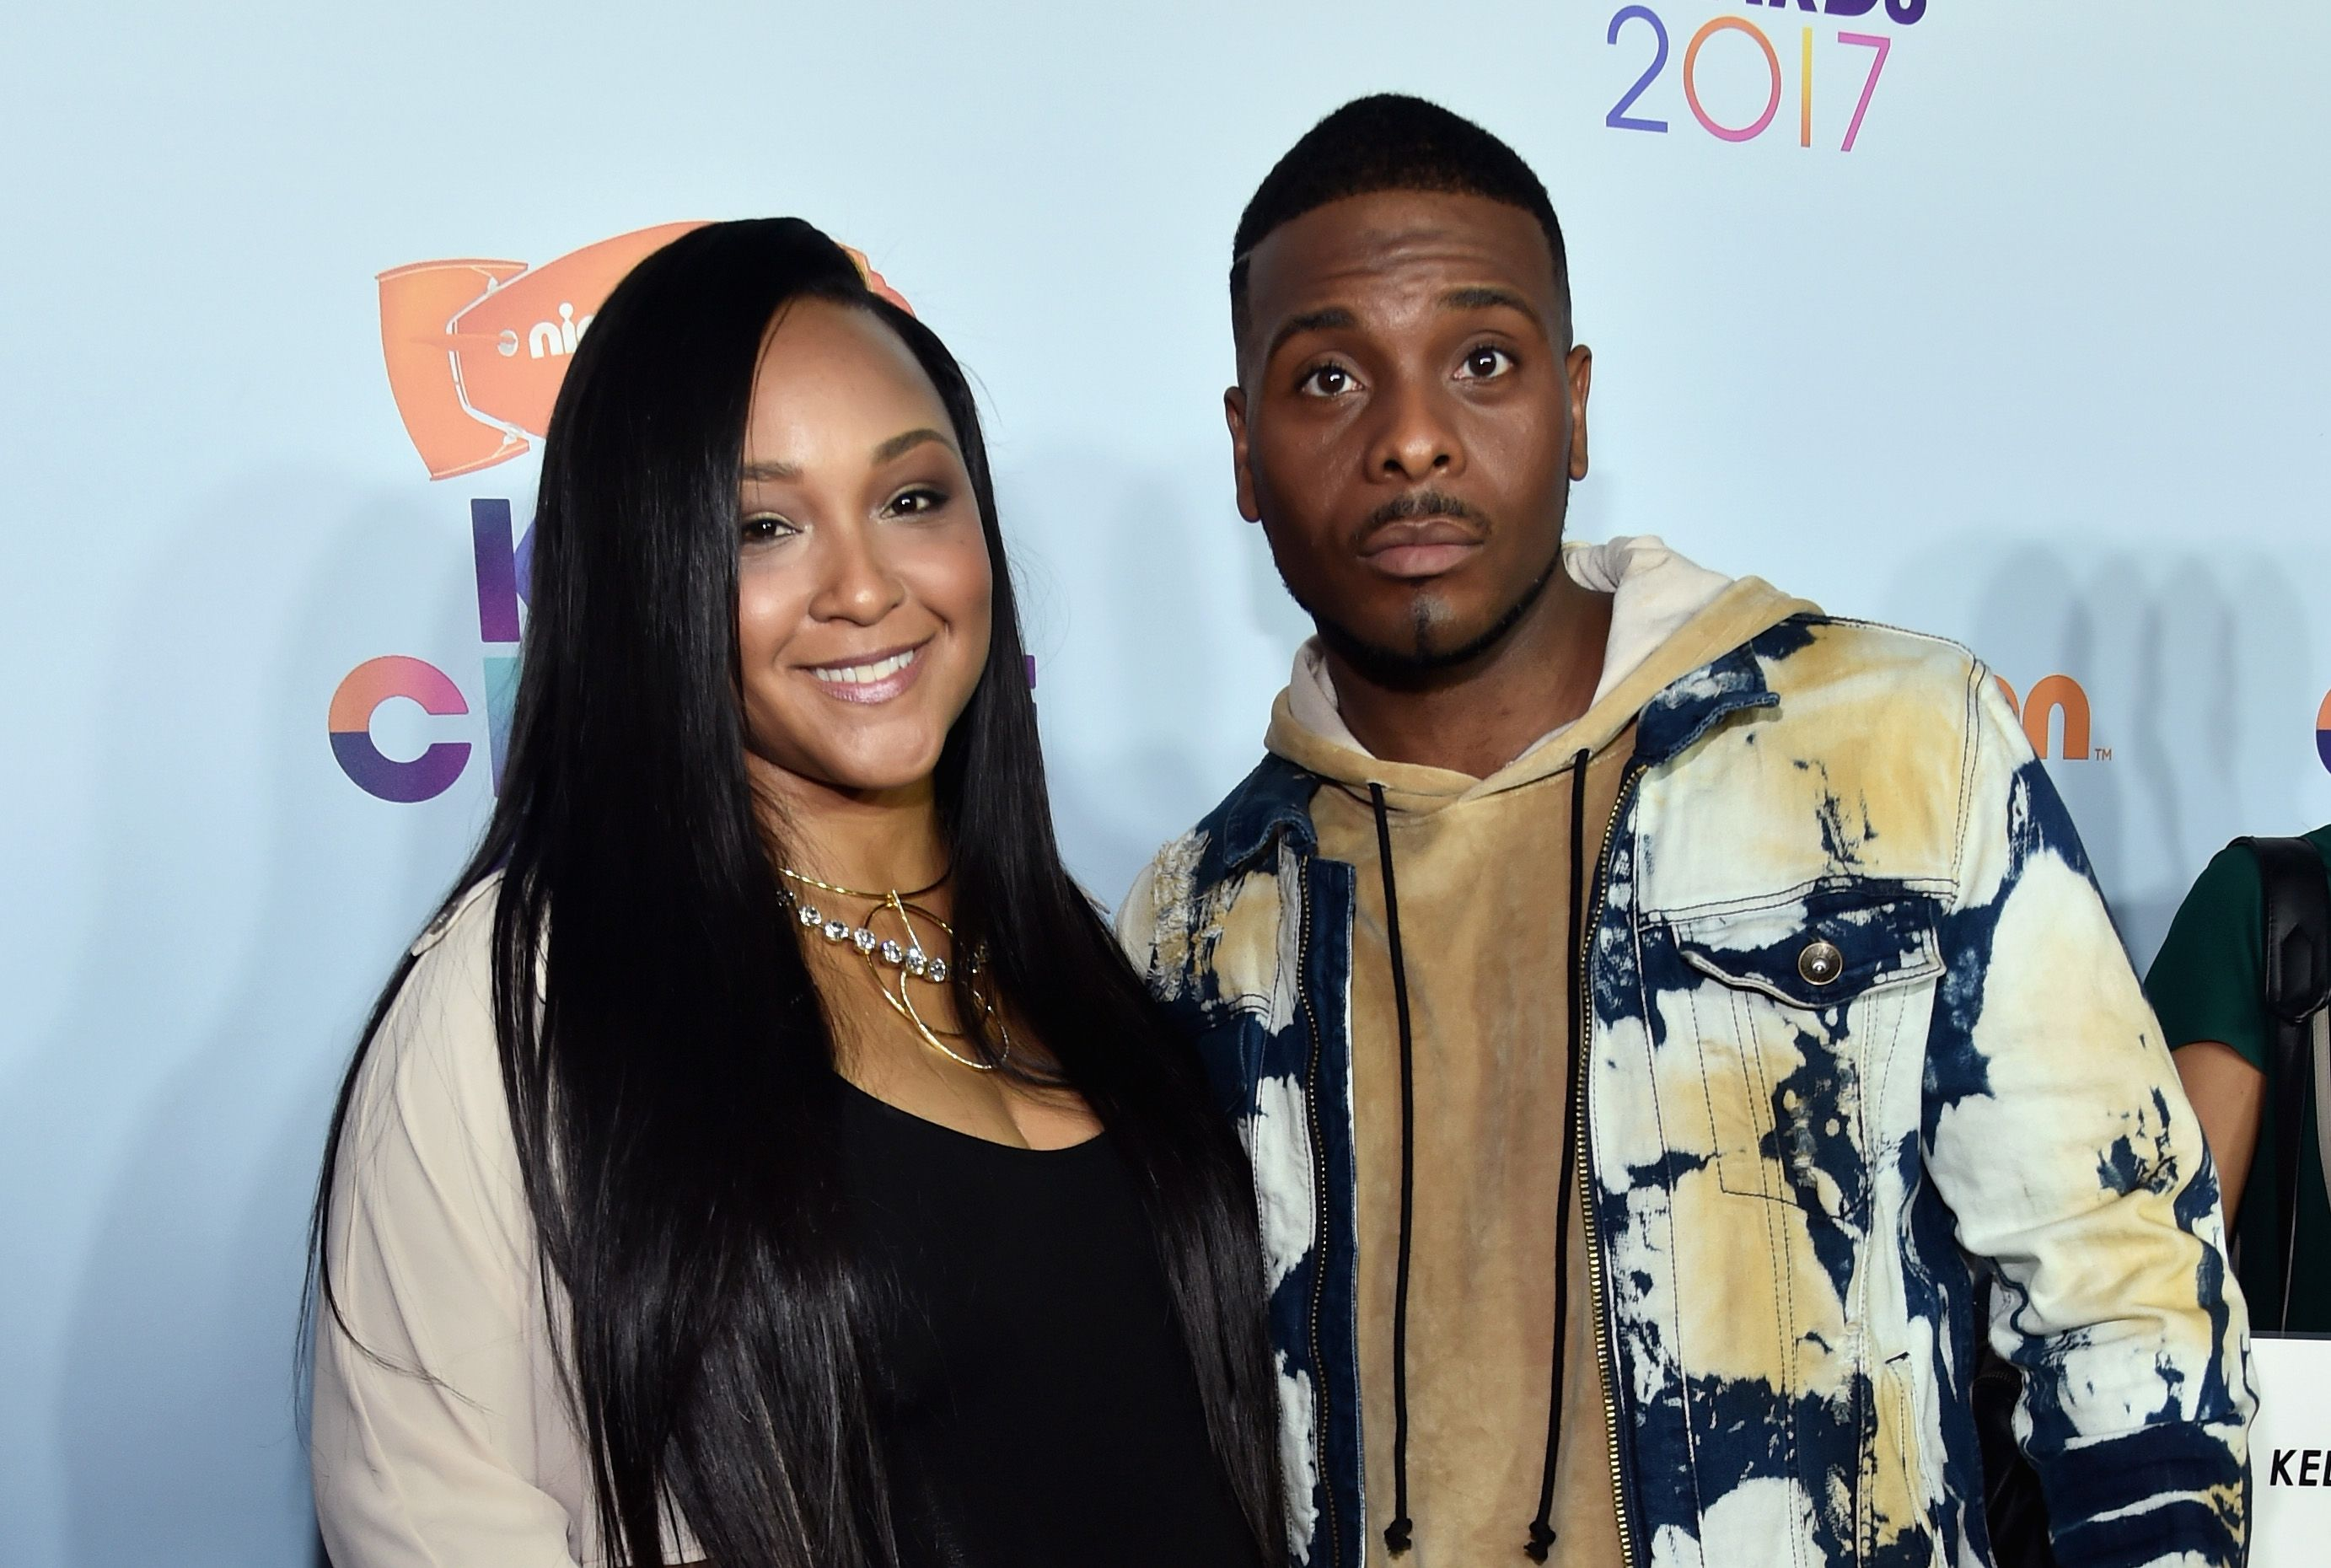 Asia Lee and Kel Mitchell at Nickelodeon's 2017 Kids' Choice Awards at USC Galen Center on March 11, 2017. | Source: Getty Images